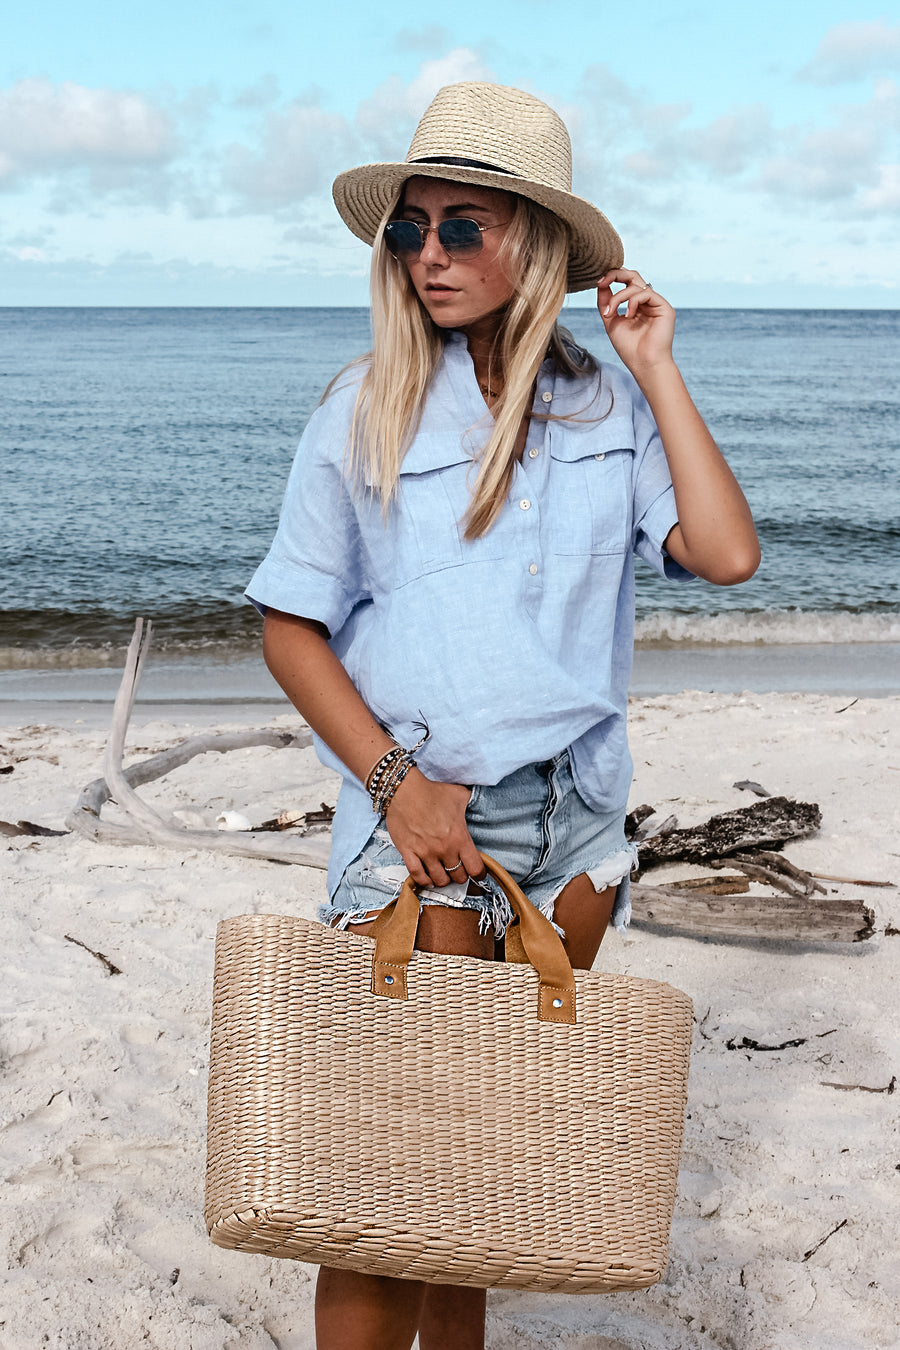 person at beach, holding large straw tote bag finished with natural leather handles and wearing straw fedora hat.